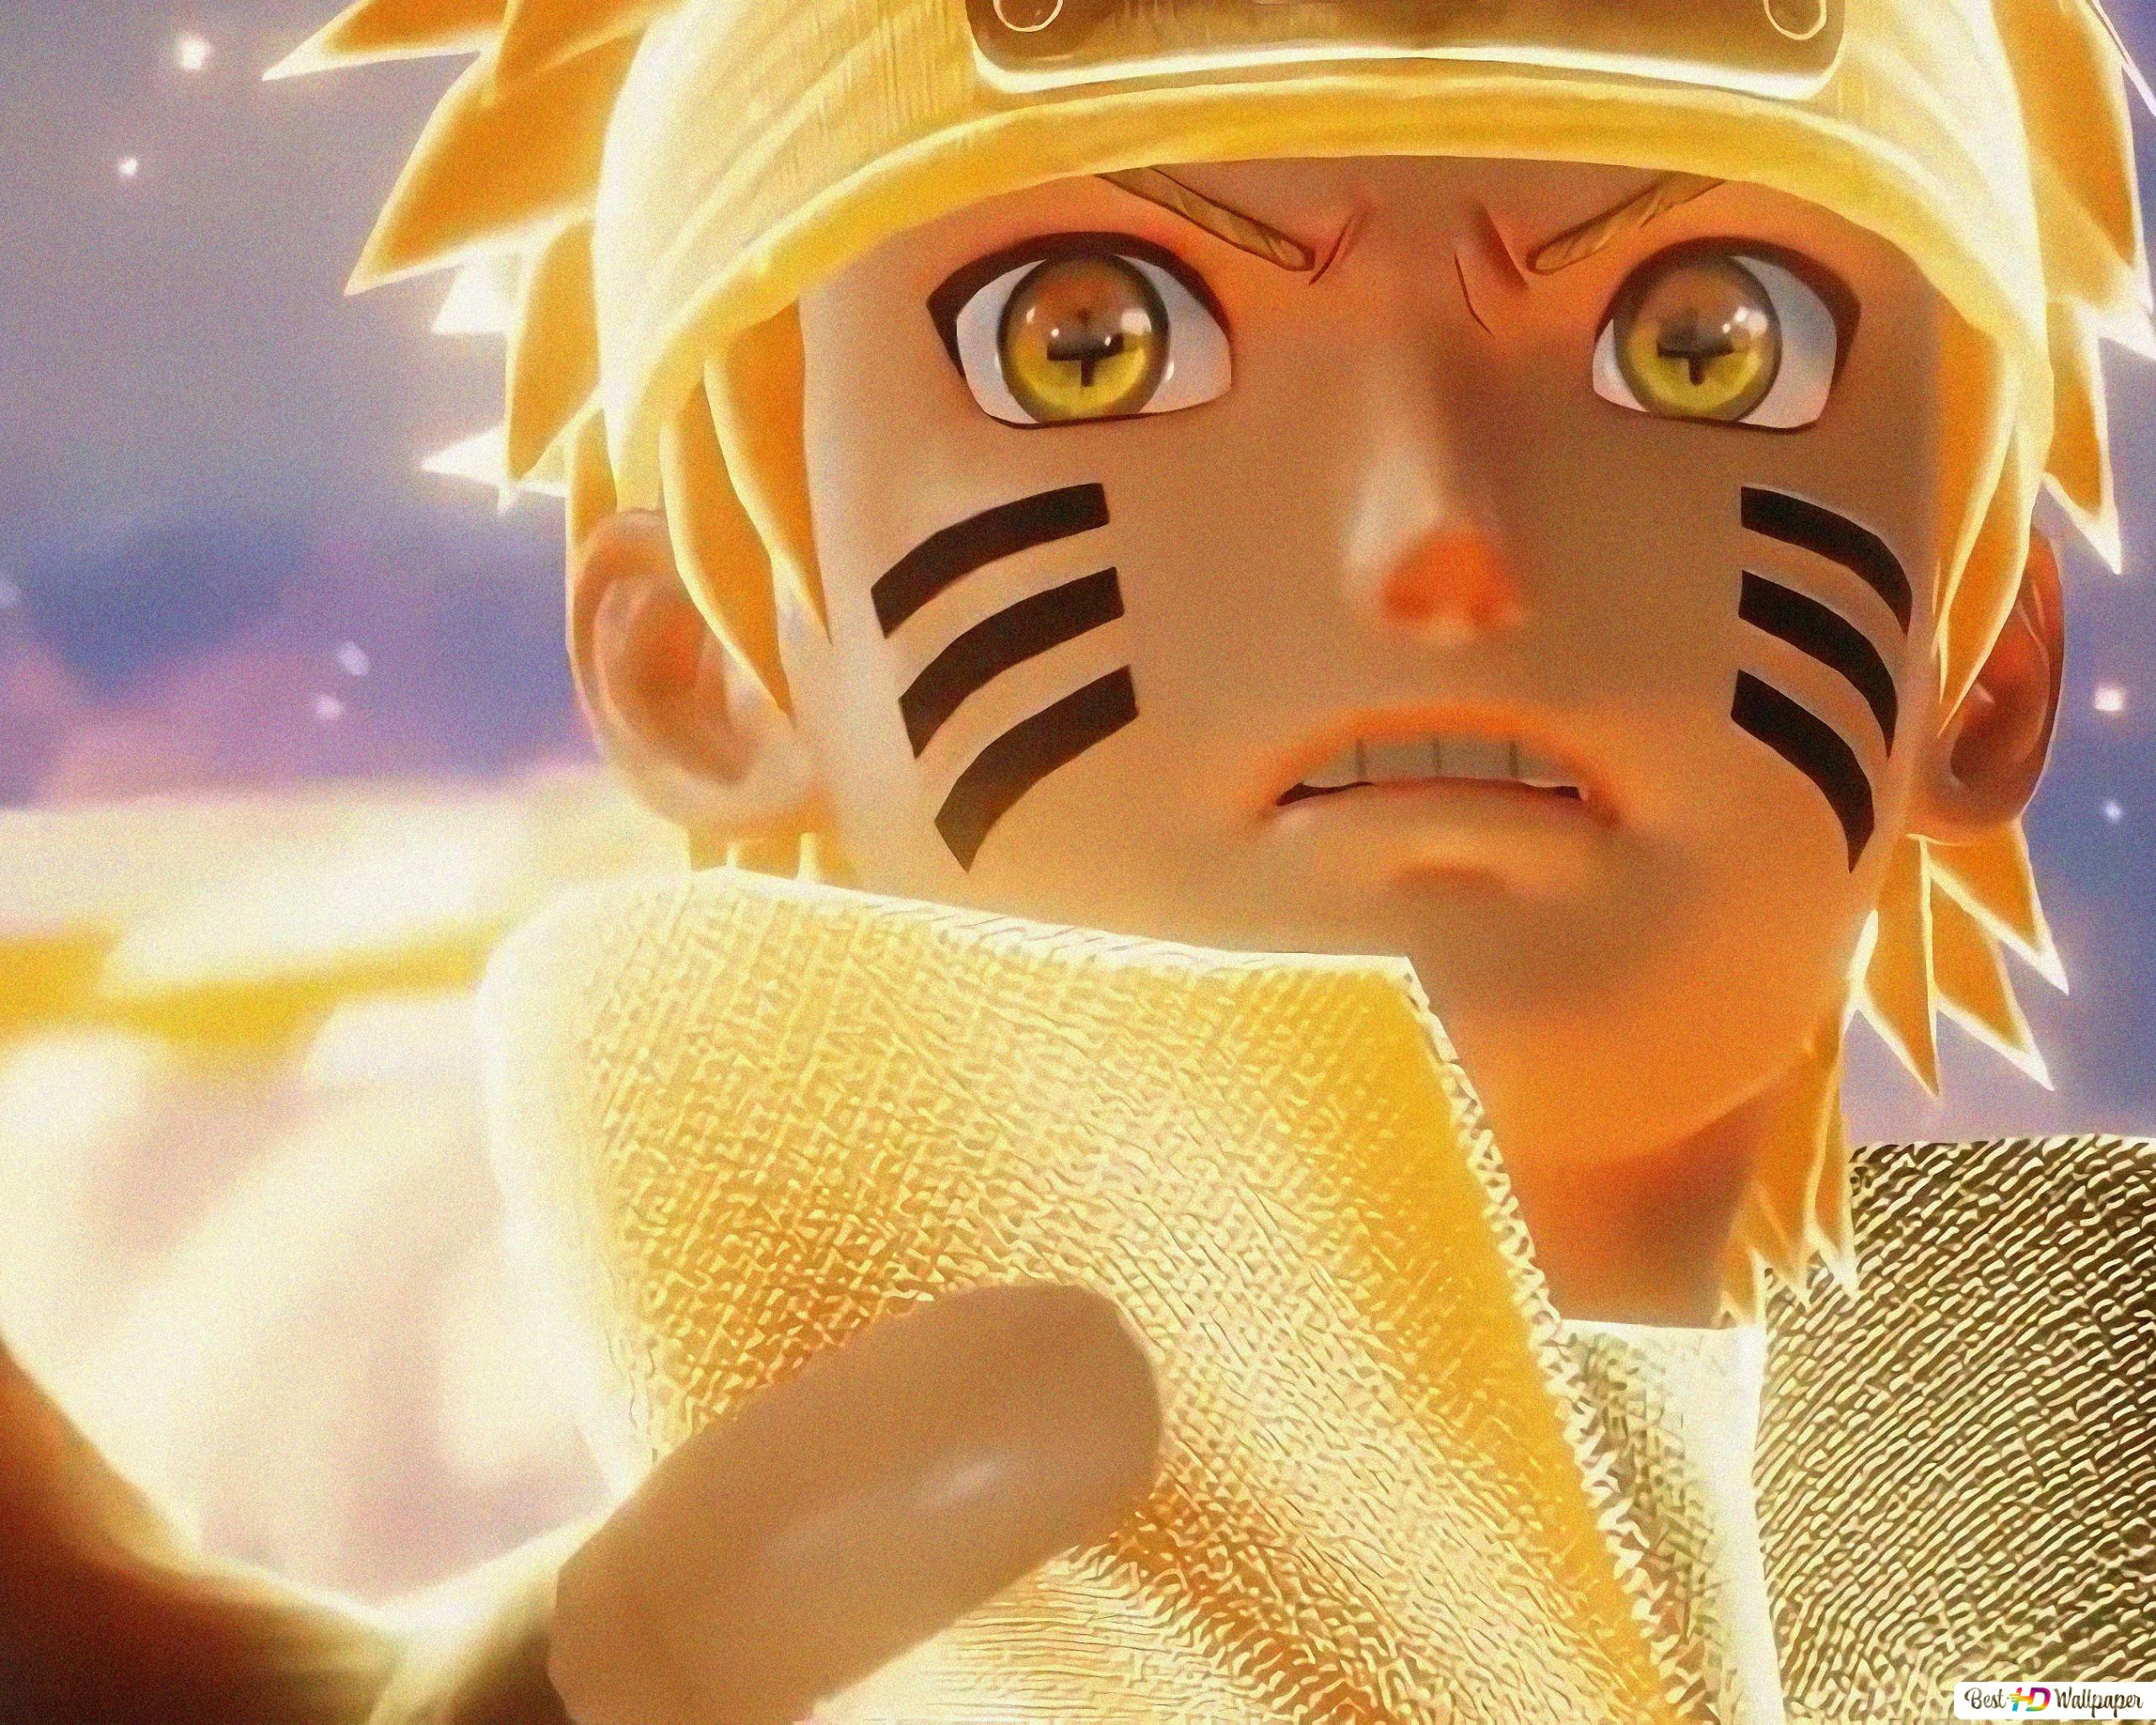 jump force naruto uzumaki wallpaper 2560x2048 6644 33